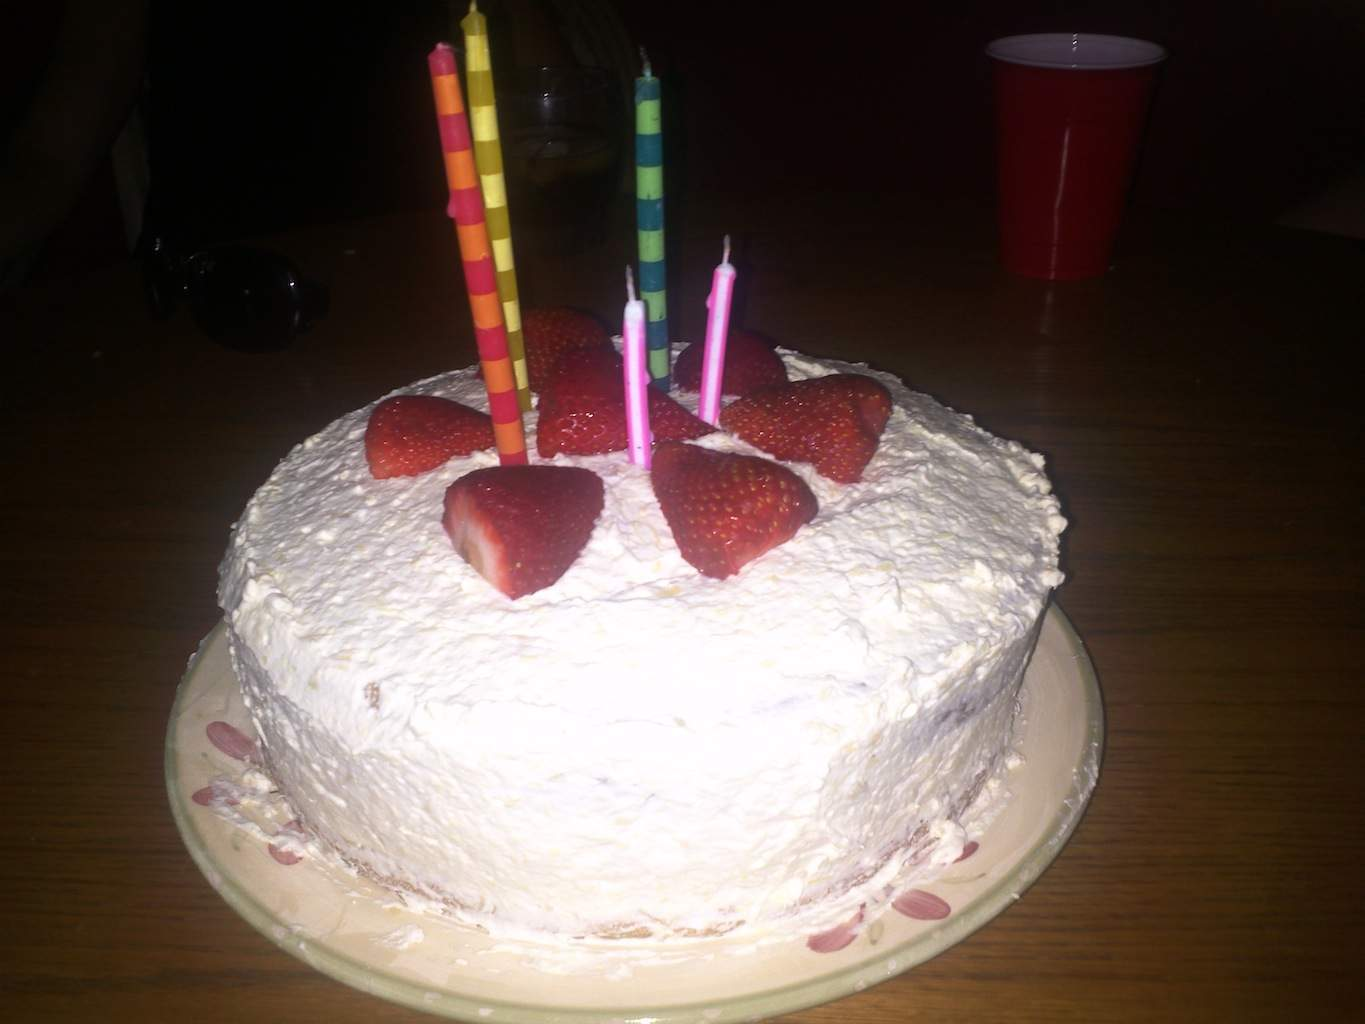 Images Of Delicious Birthday Cake : My moist and delicious birthday cake. - Sugar Dish Me